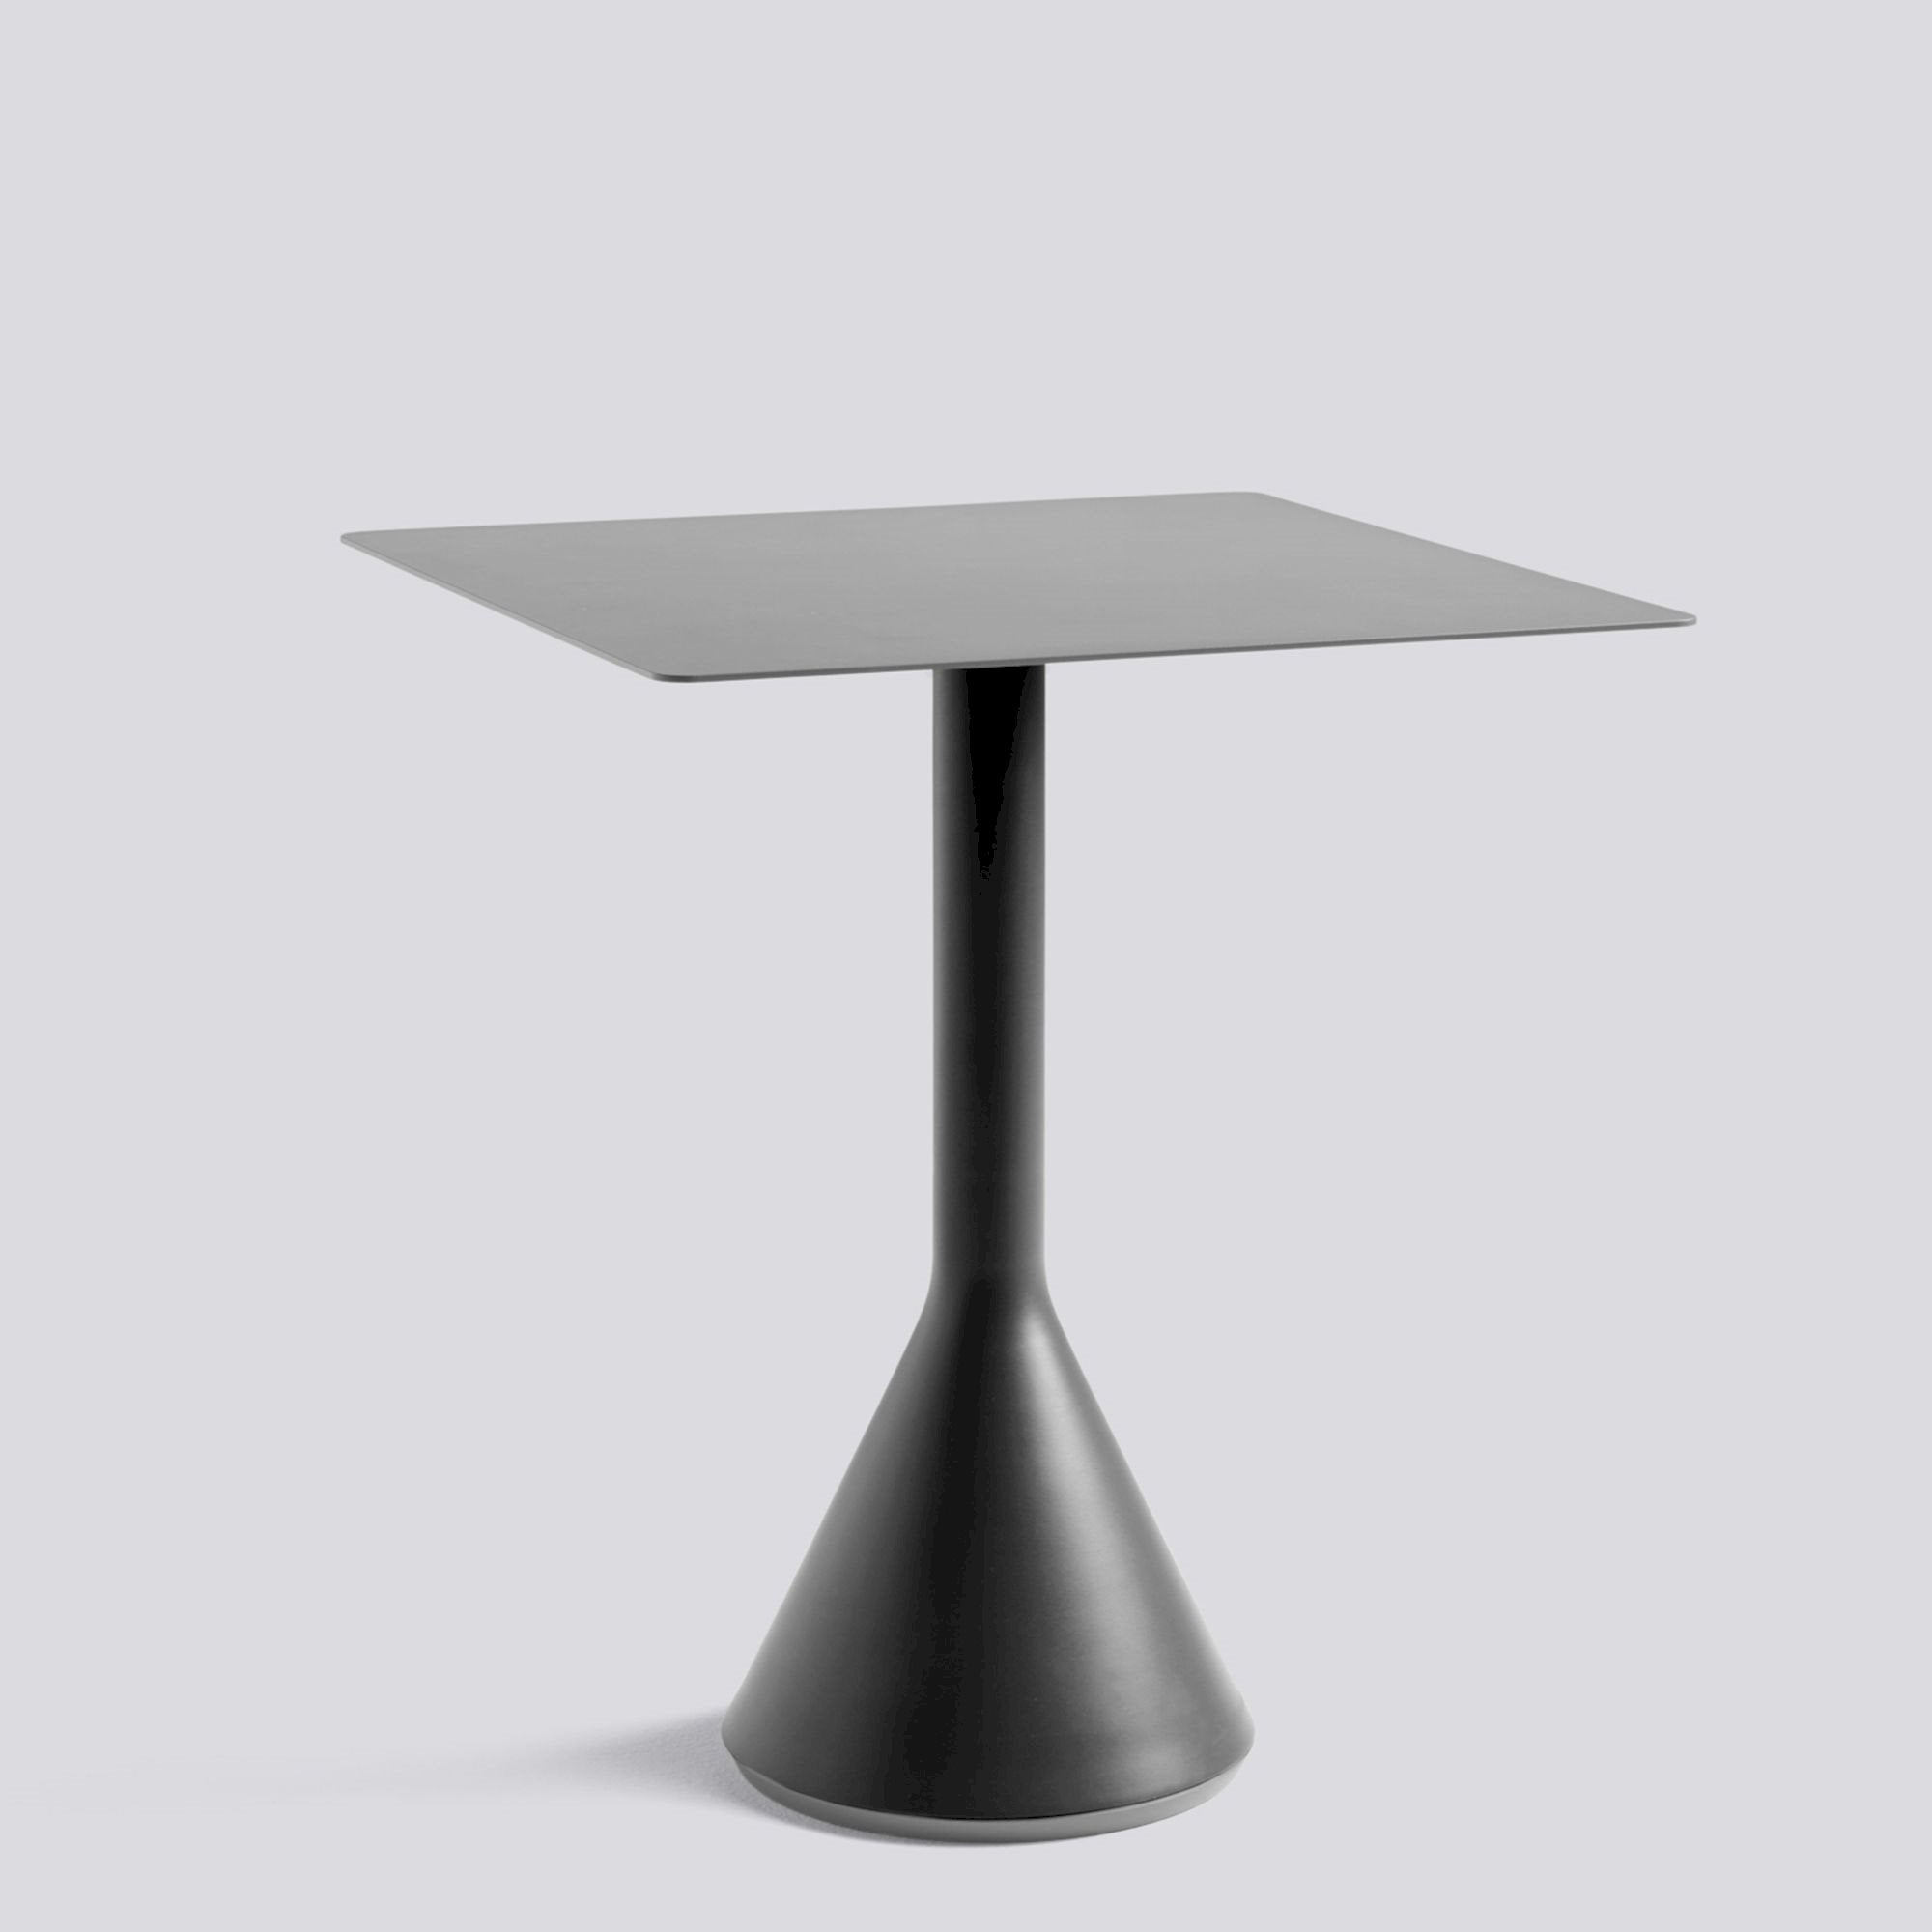 Palissade Cone Table - L65 x W65 x H74cm